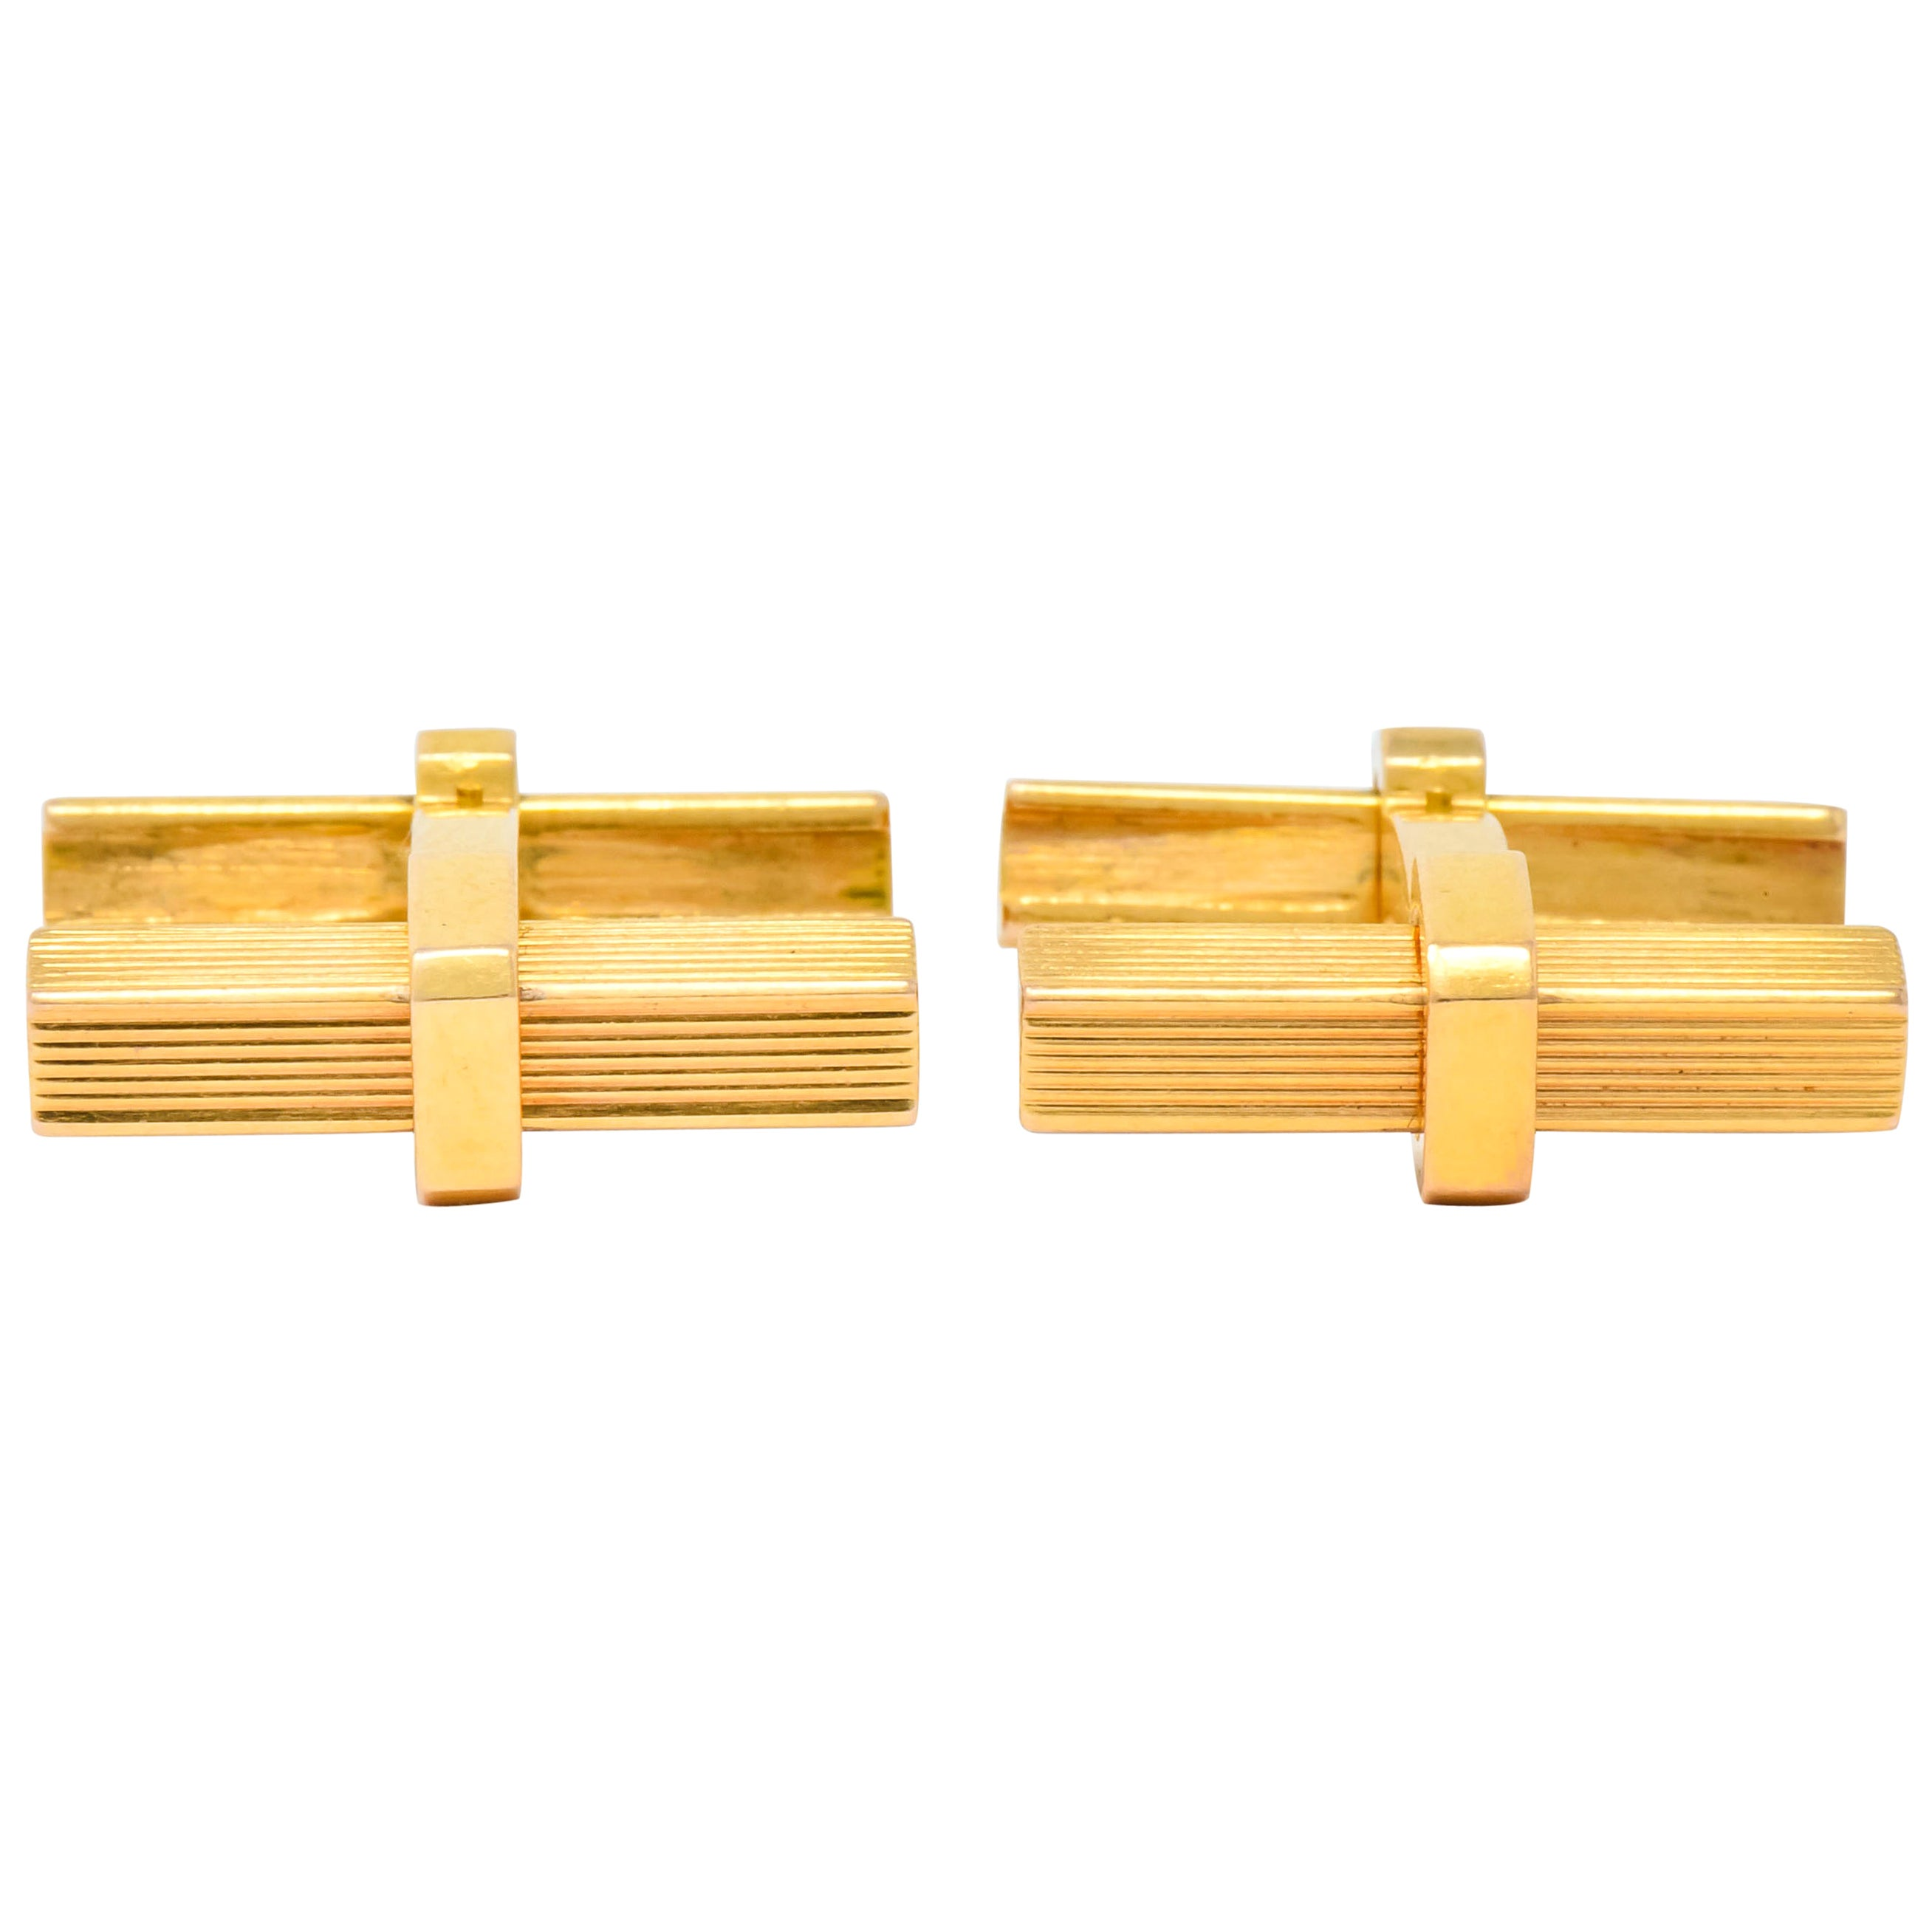 Vintage 1960s French 18 Karat Gold Men's Articulated Bar Cufflinks